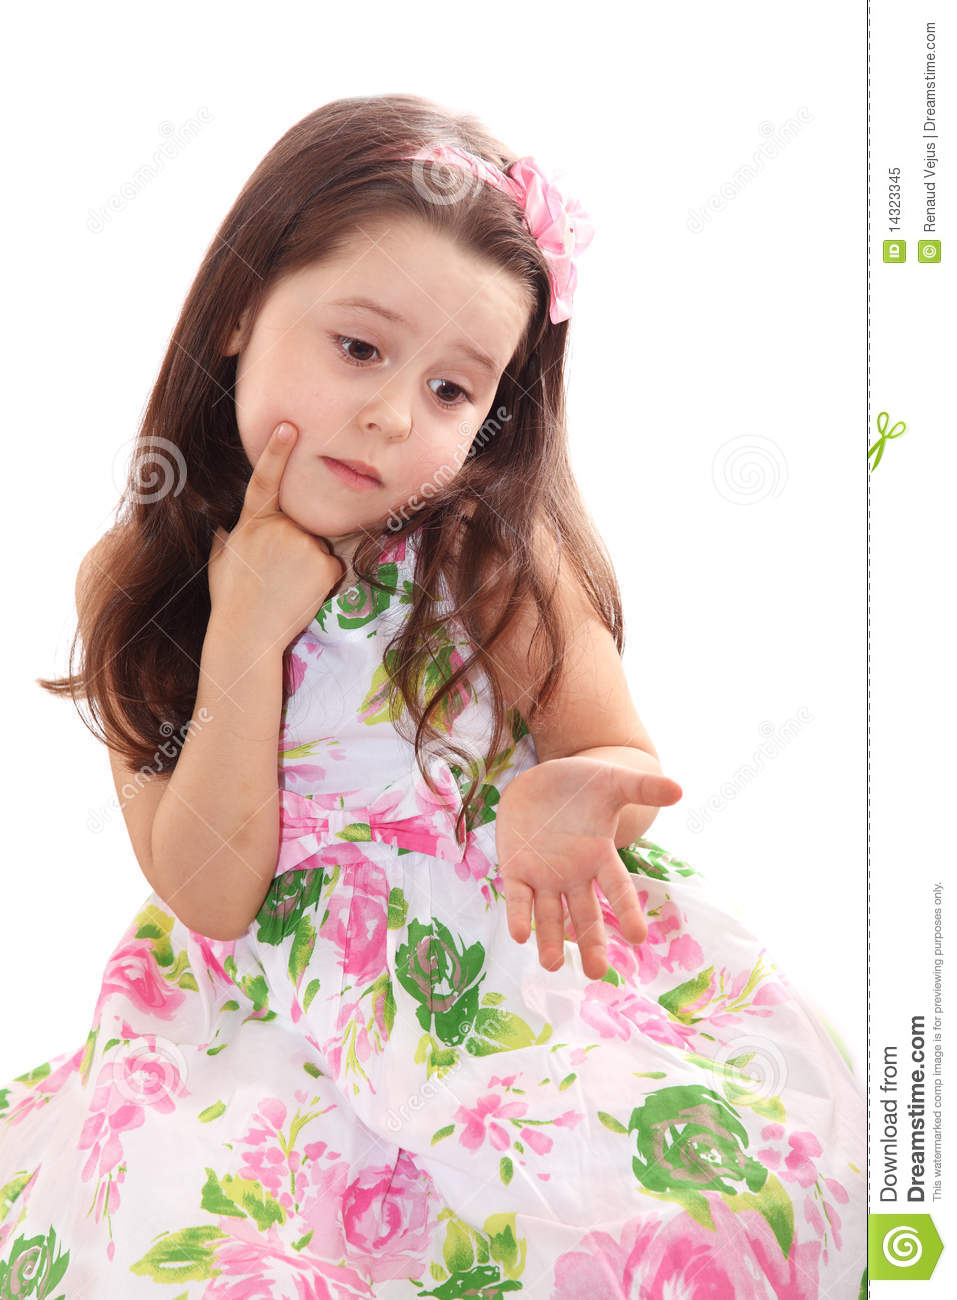 Cute Little Girl Puzzled Royalty Free Stock Photo - Image: 14323345